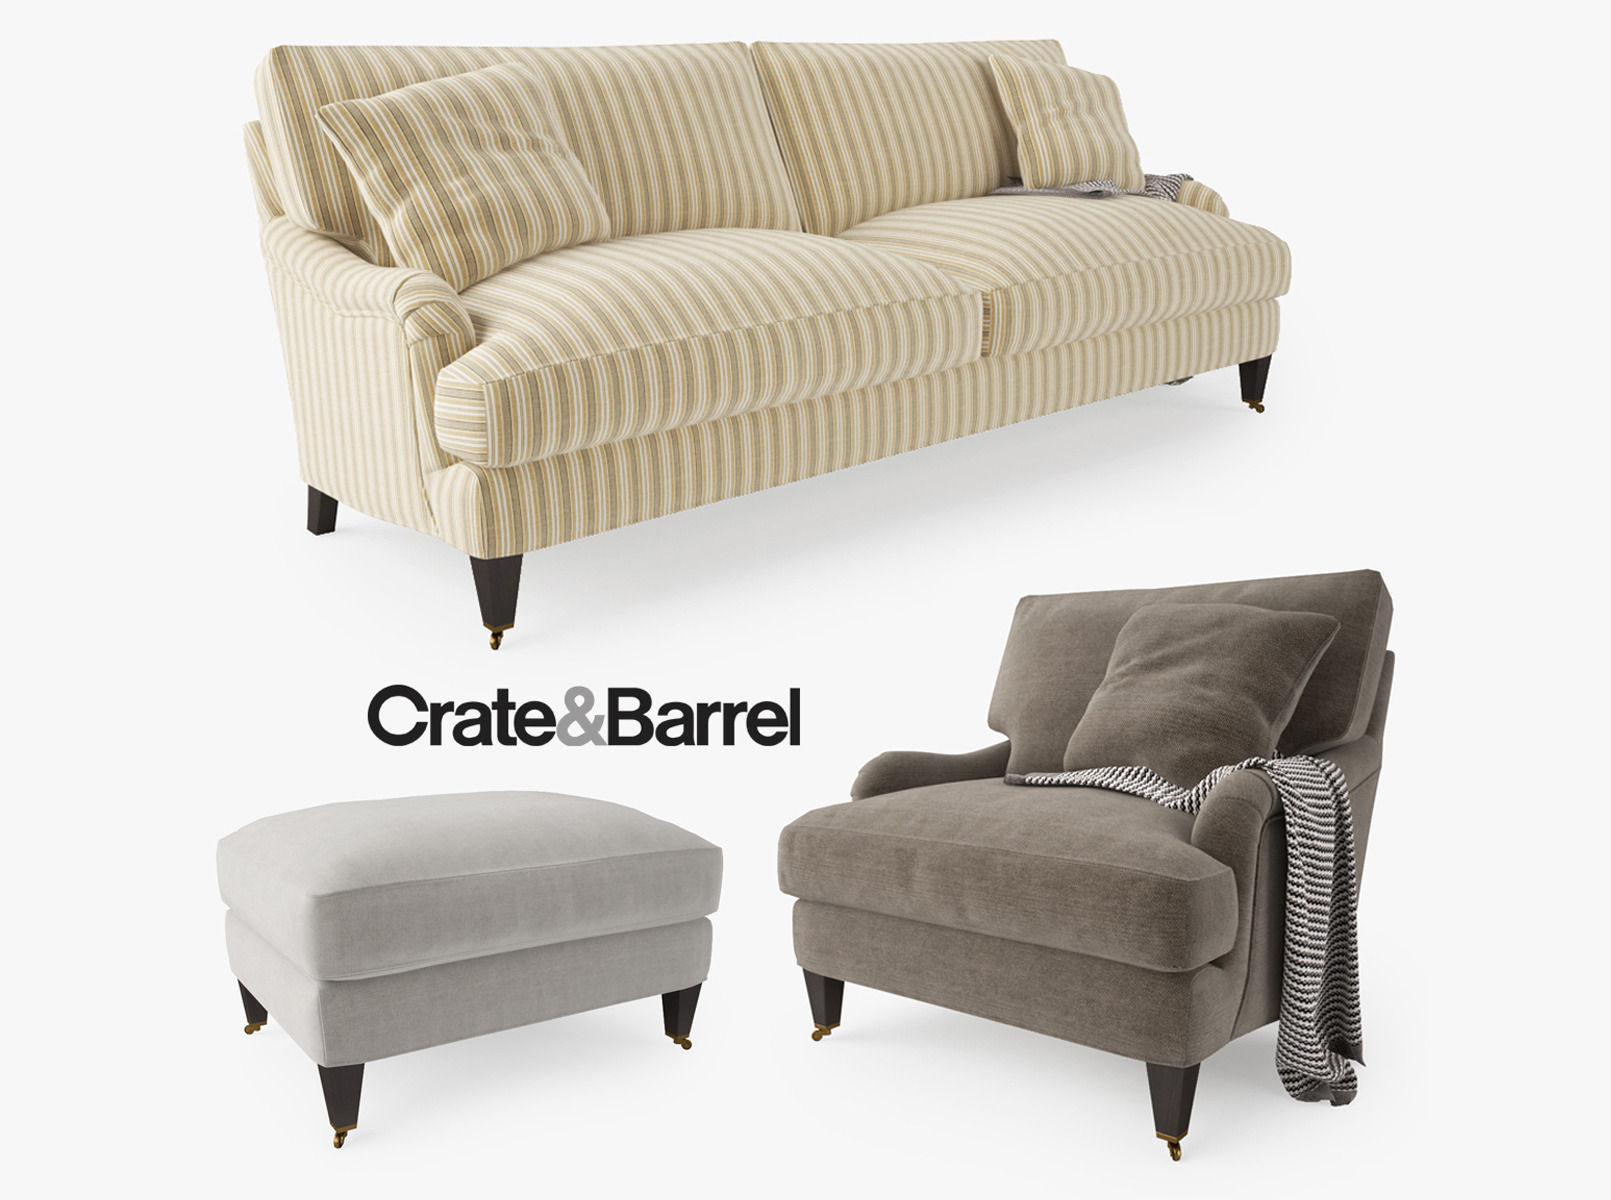 Crate Barrel Couch | Crate and Barrel Couch | Crate and Barrell Couch